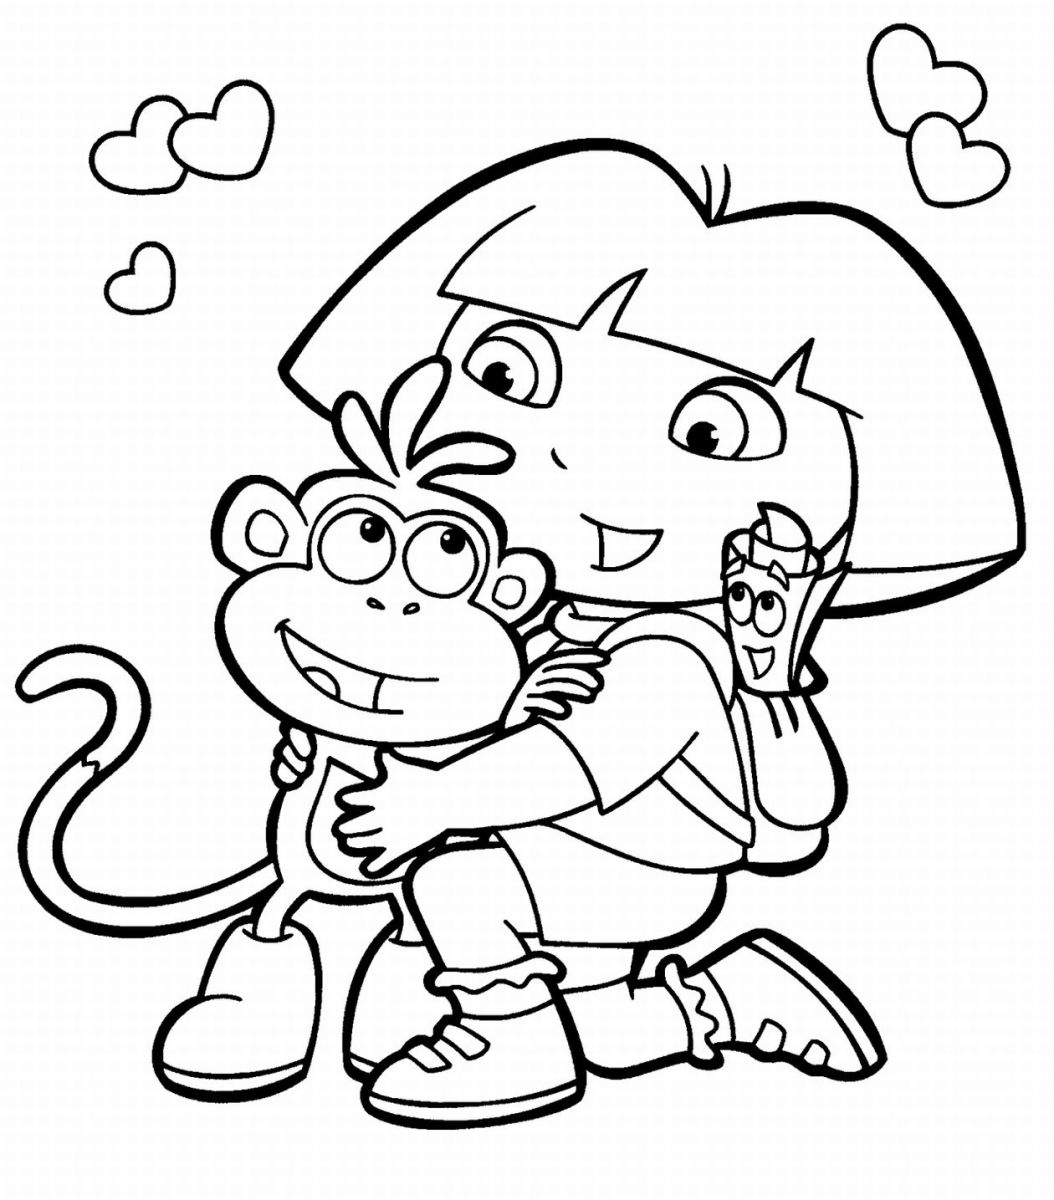 Dora and boots the monkey